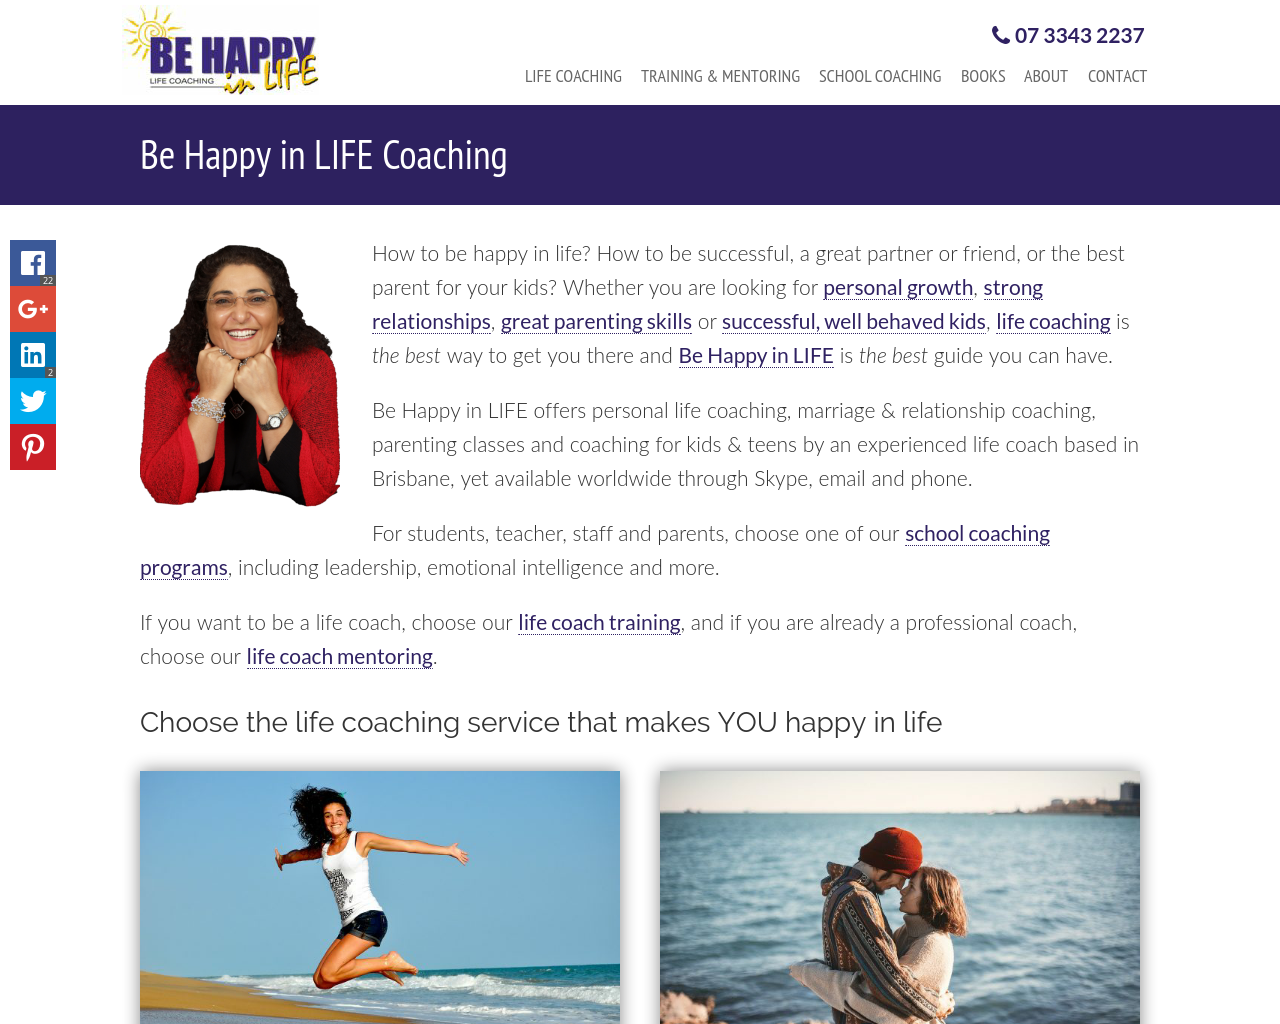 Be-Happy-in-LIFE-Advertising-Reviews-Pricing